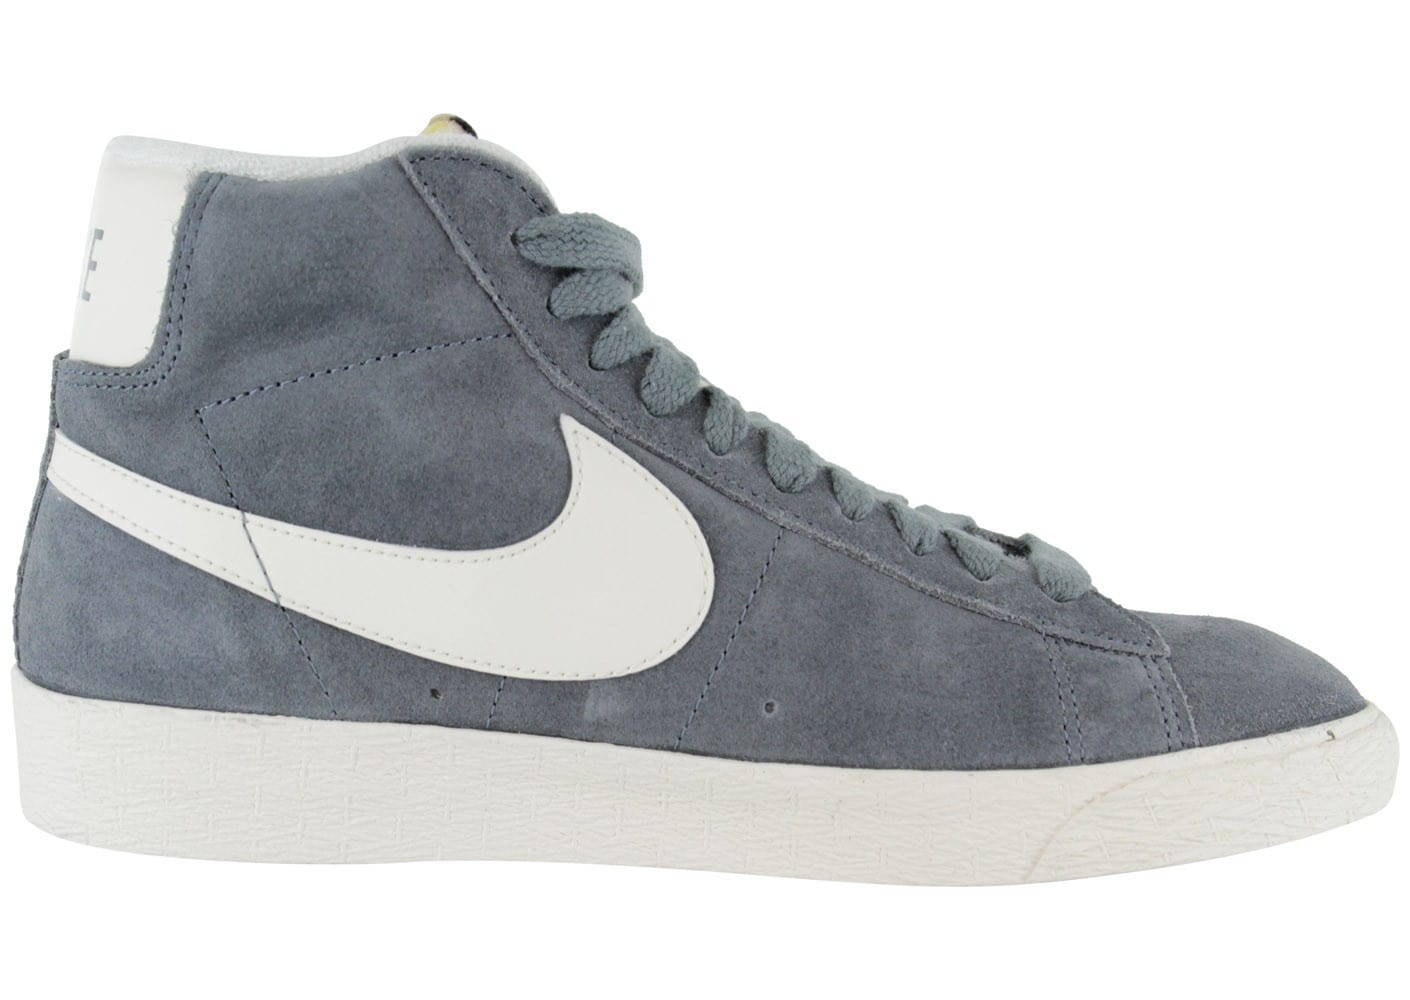 nike blazer grise chaussures chaussures chausport. Black Bedroom Furniture Sets. Home Design Ideas